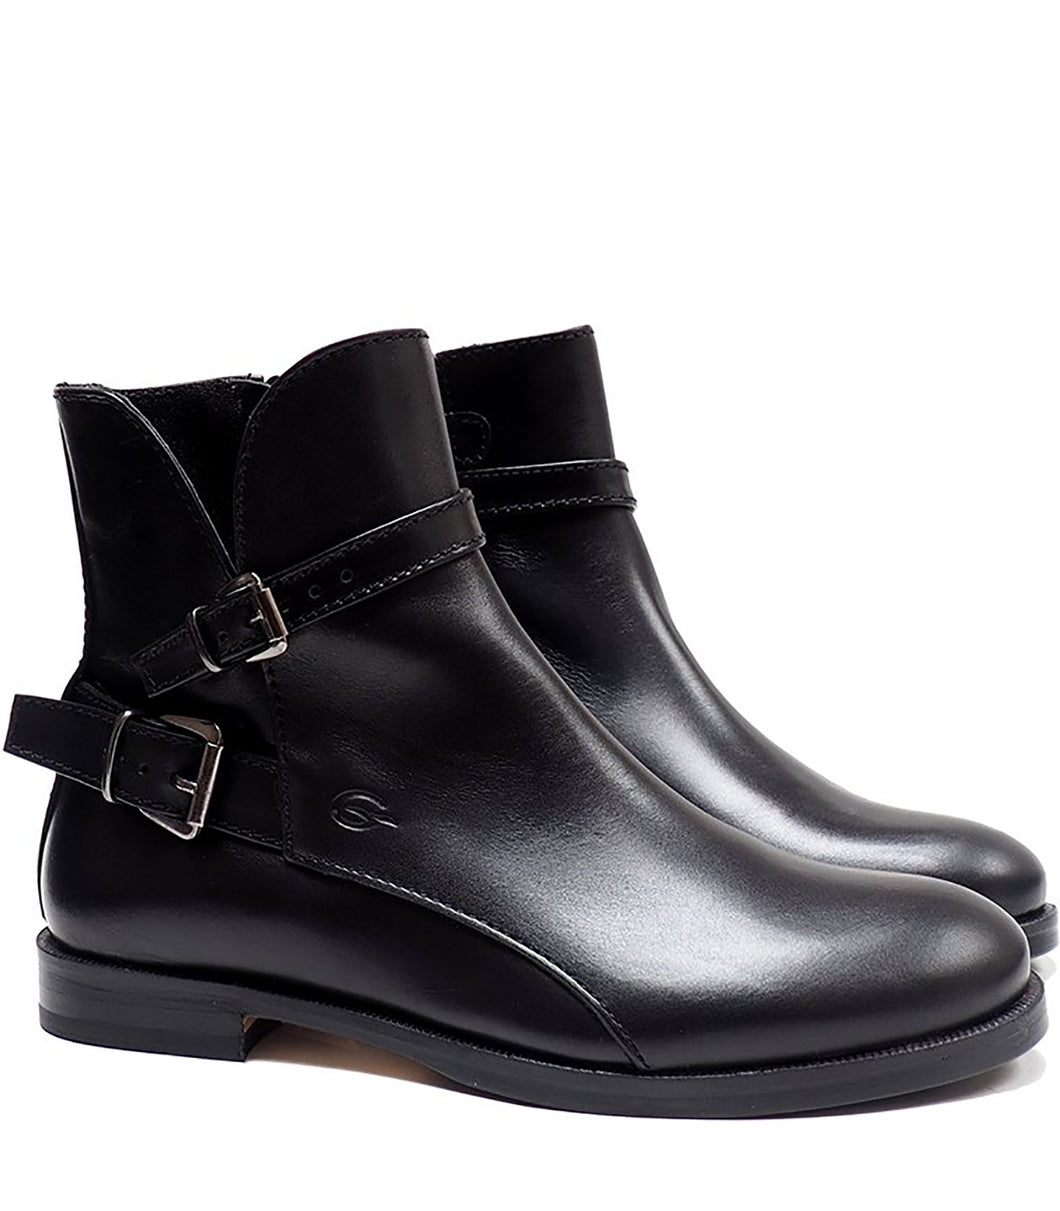 Boots in black calf leather with two buckles